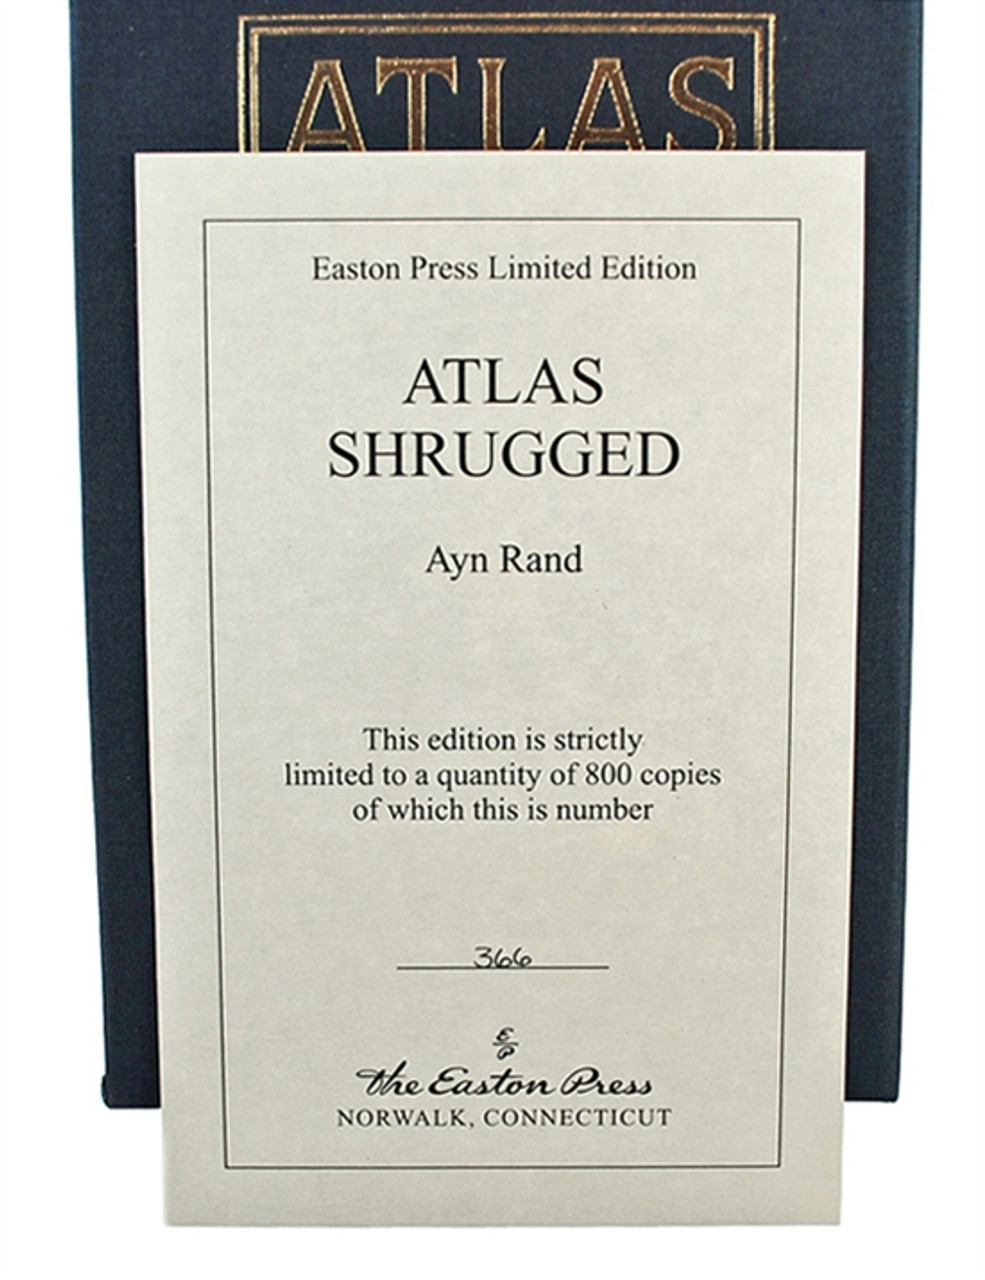 """Easton Press, Ayn Rand """"Atlas Shrugged"""" Deluxe Limited Edition #366 of only 800 w/Slipcase (Very Fine)"""